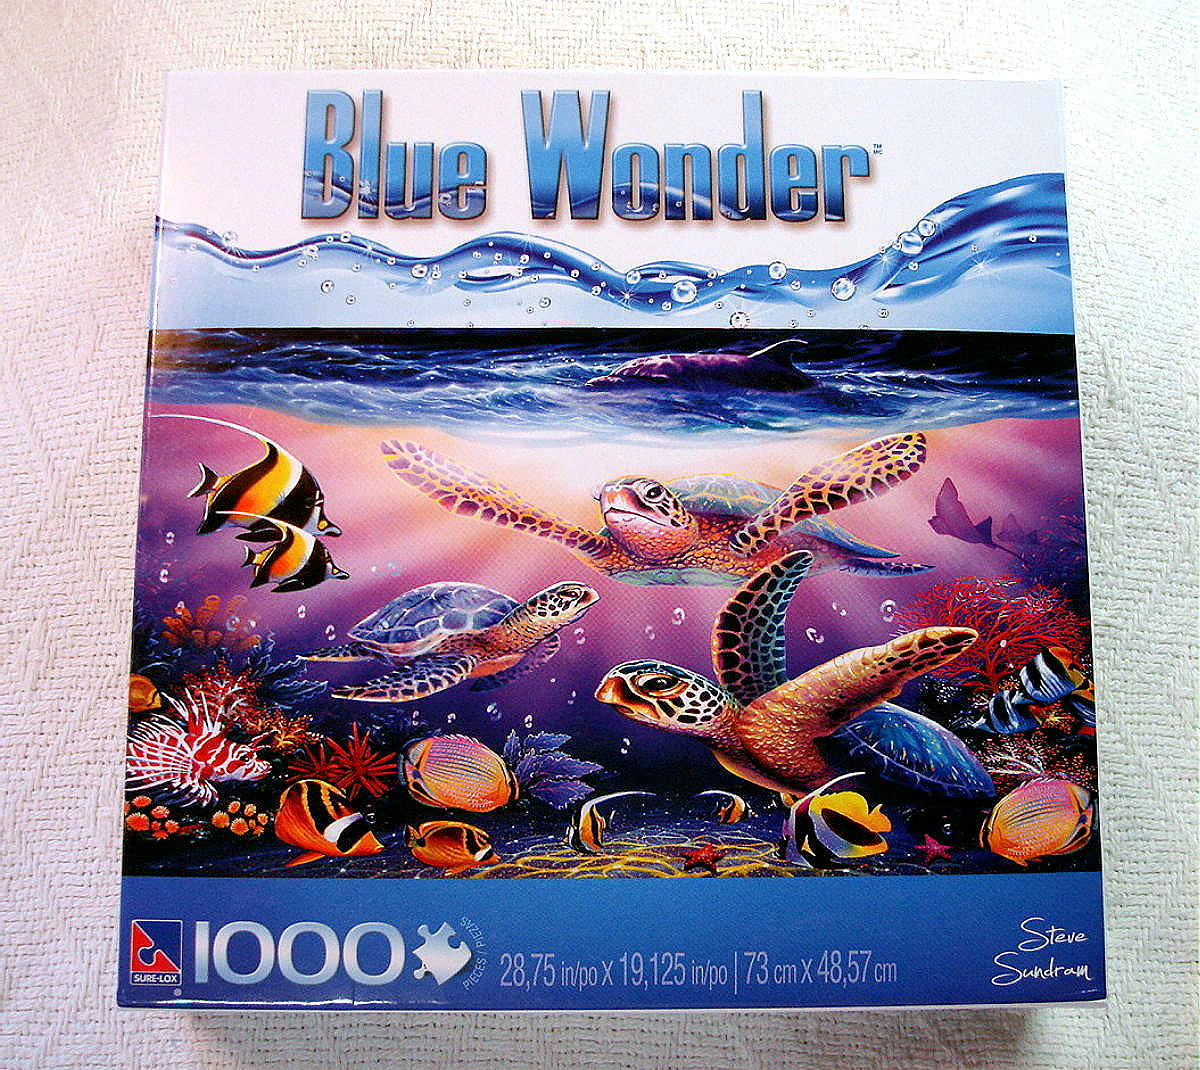 turtle family 1000 piece jigsaw puzzle steve and 50 similar items